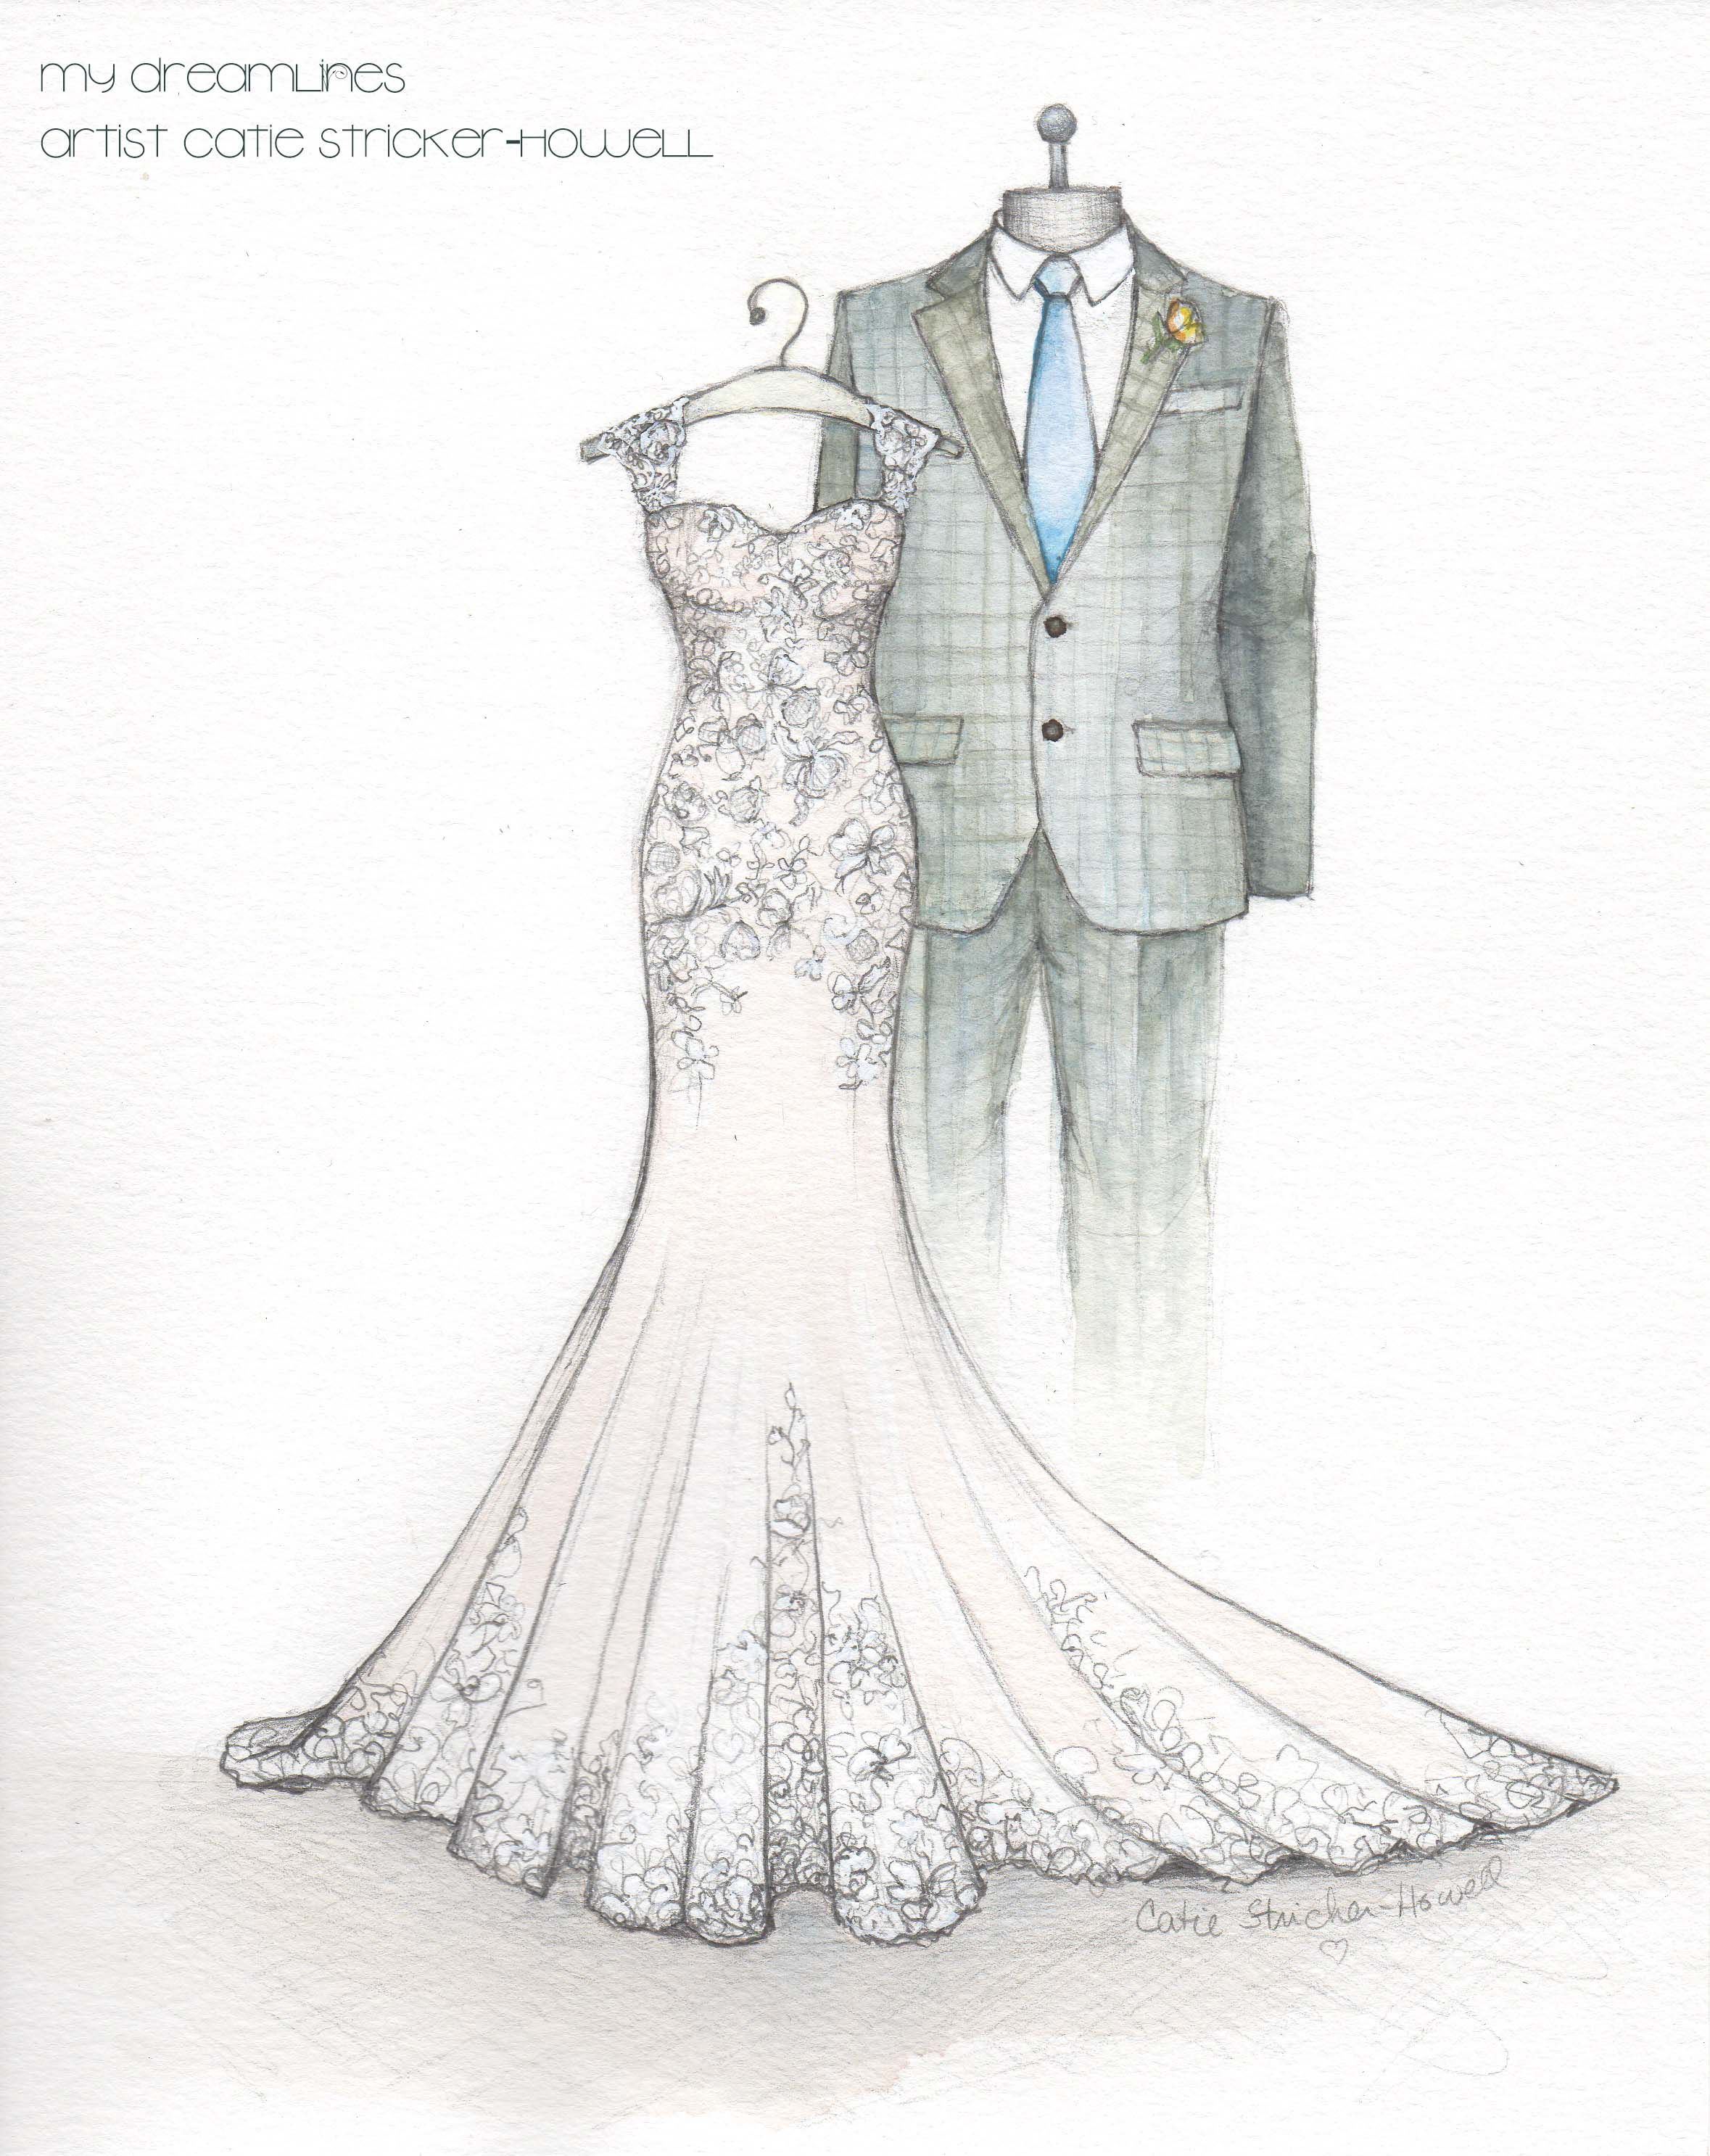 3a958e3622c Loved sketching this mermaid style wedding gown! A wedding dress  illustration is a great gift for your anniversary or wedding day.